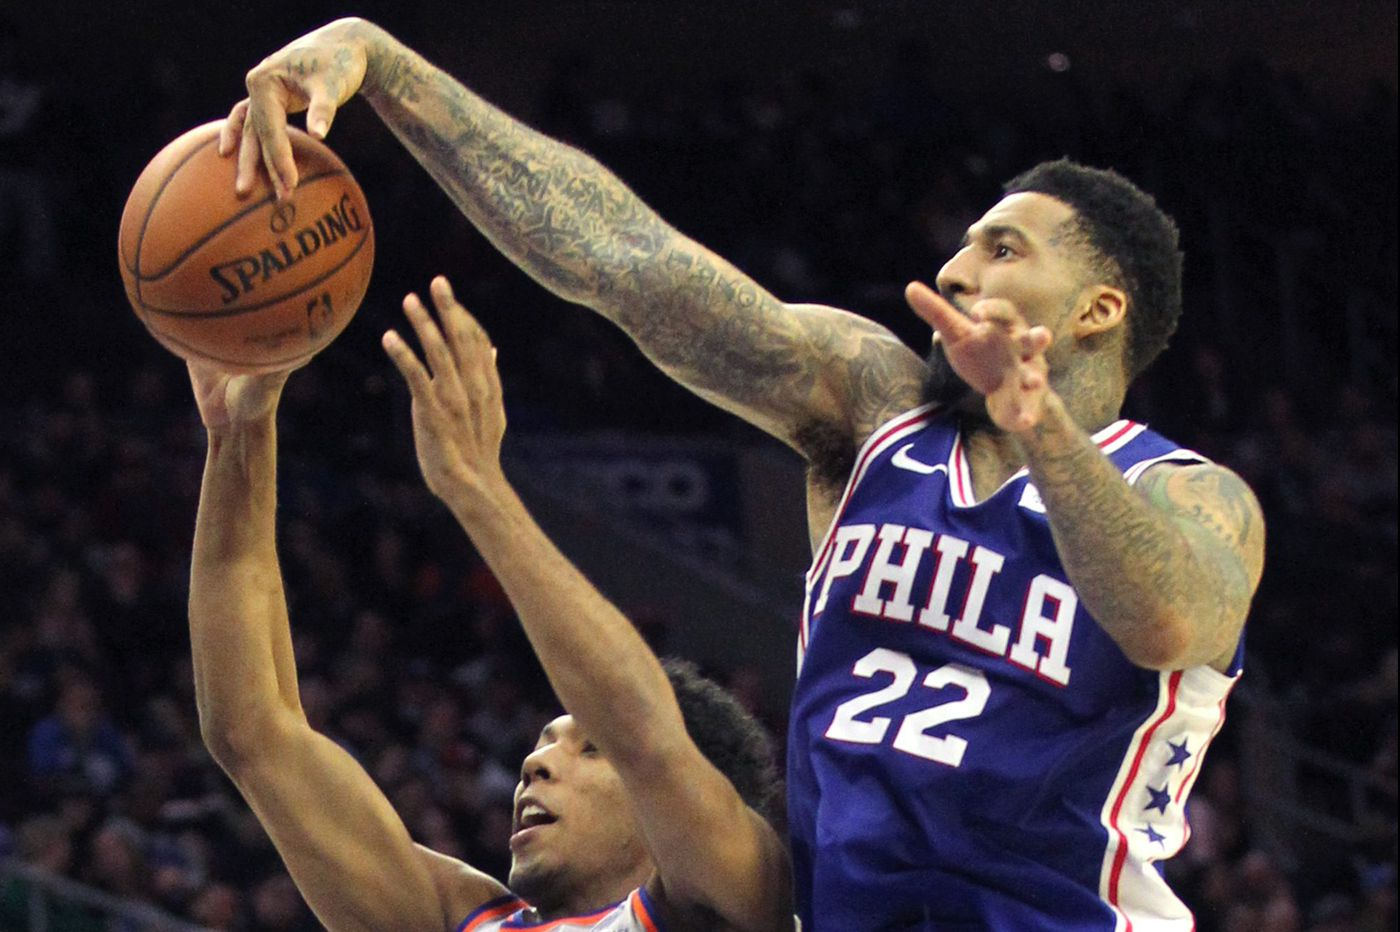 Sixers-Knicks observations: JJ Redick's movement, Jimmy Butler's presence, team's assists